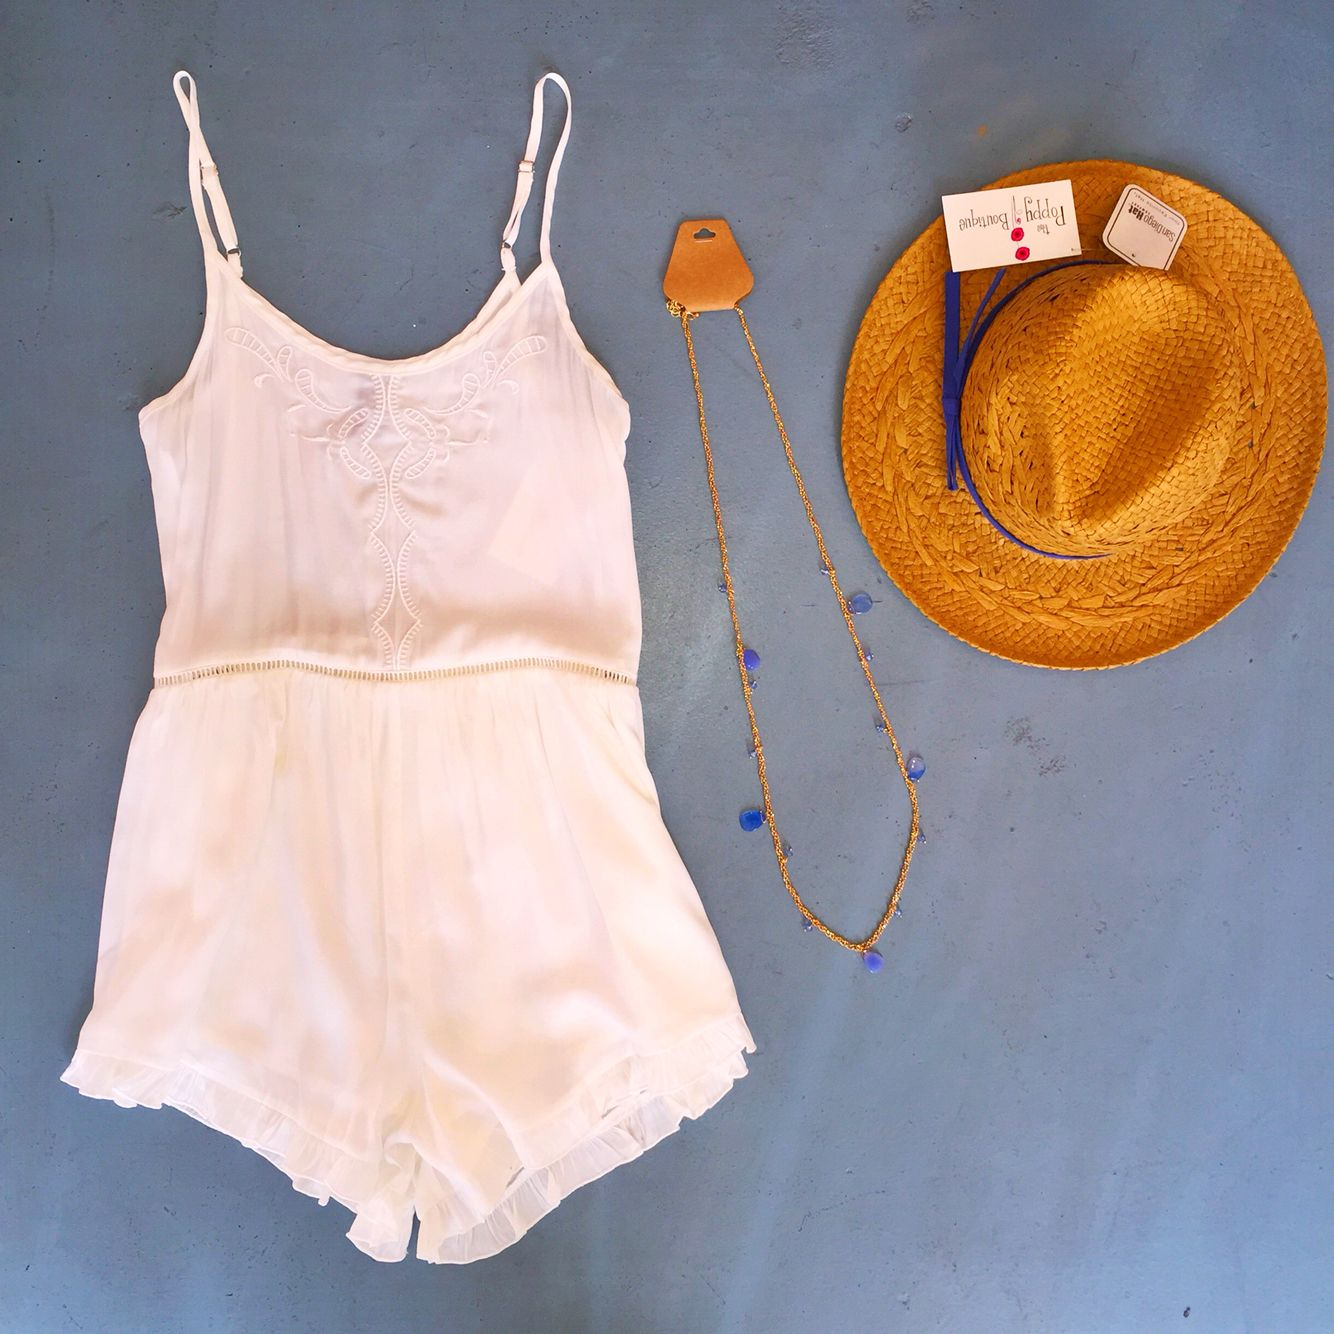 running wild and looking pretty #ootd #whitehot #romper #shoppoppy